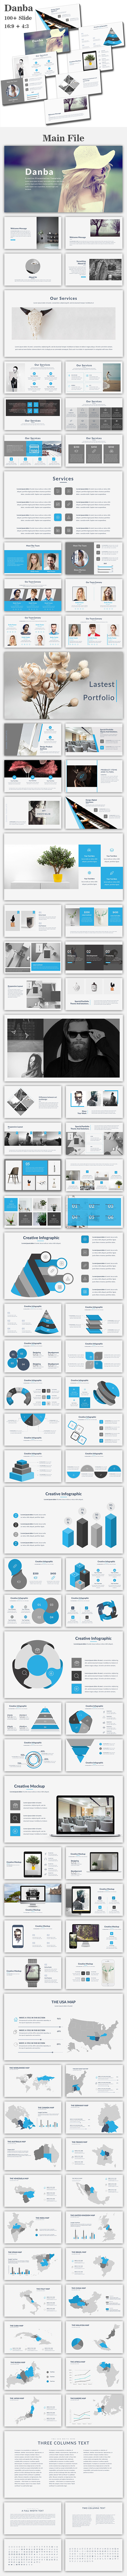 Danba Multipurpose PowerPoint Template - Creative PowerPoint Templates